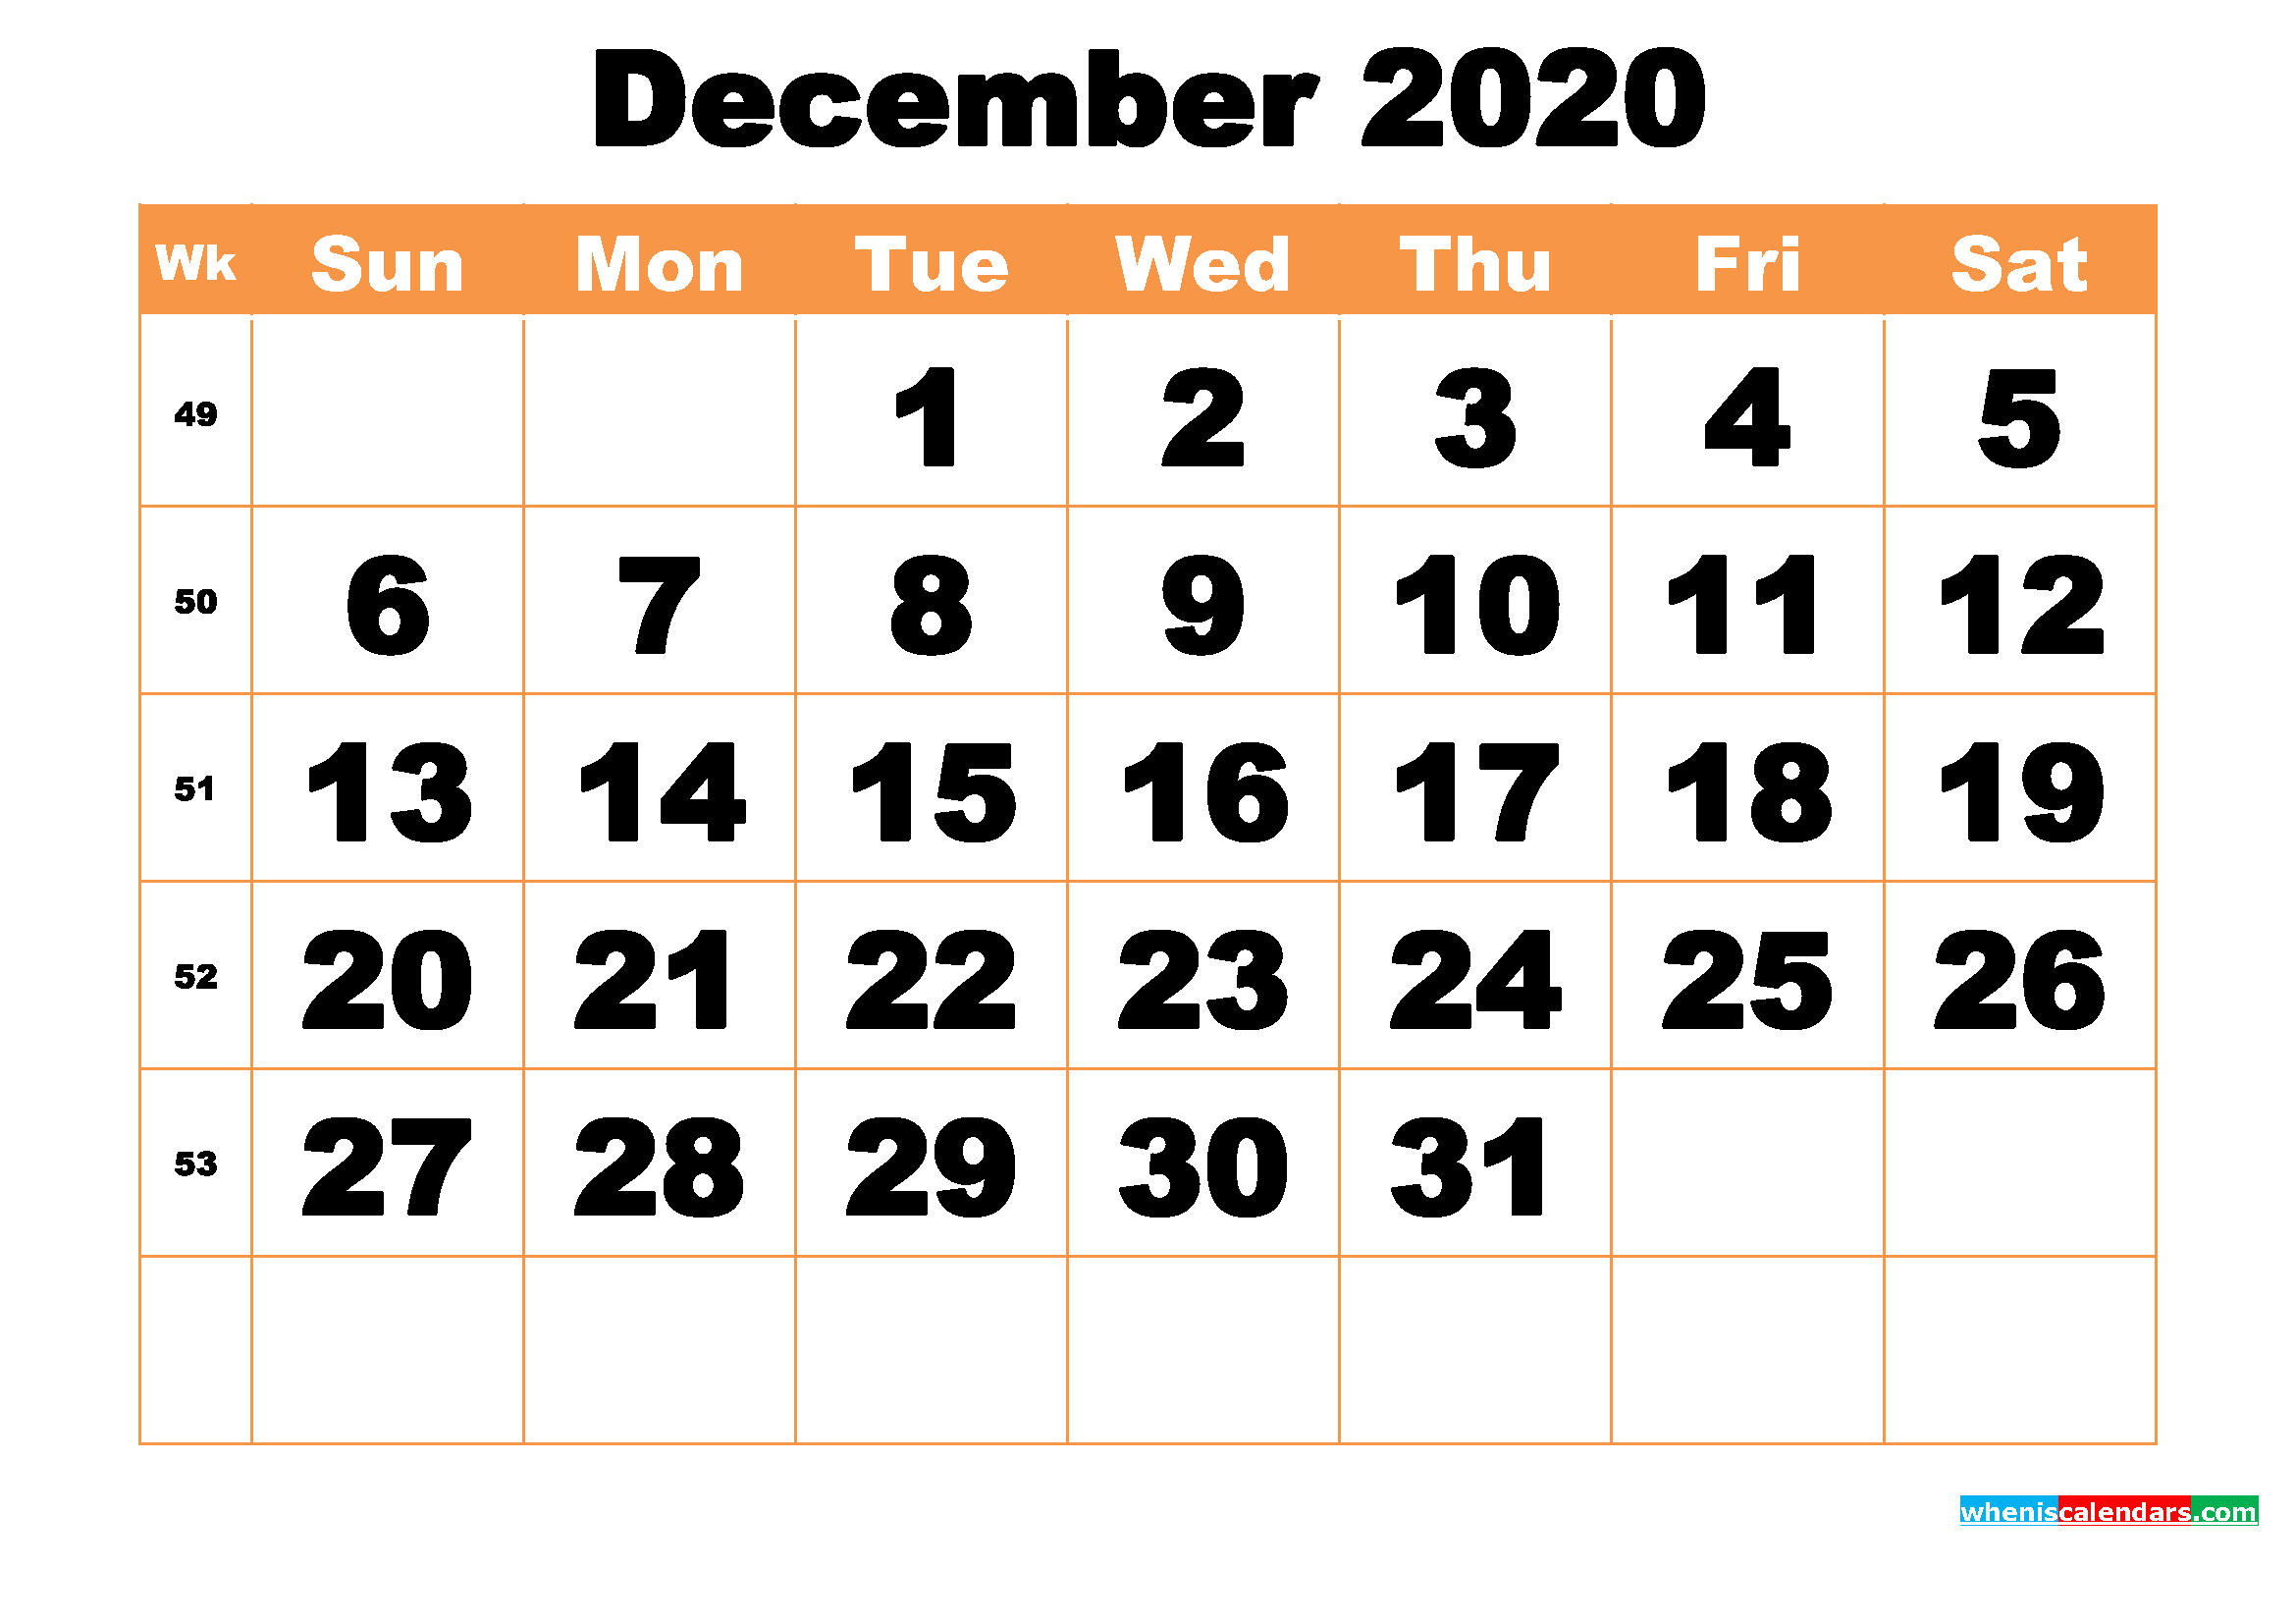 Free Printable December 2020 Calendar Word, PDF, Image